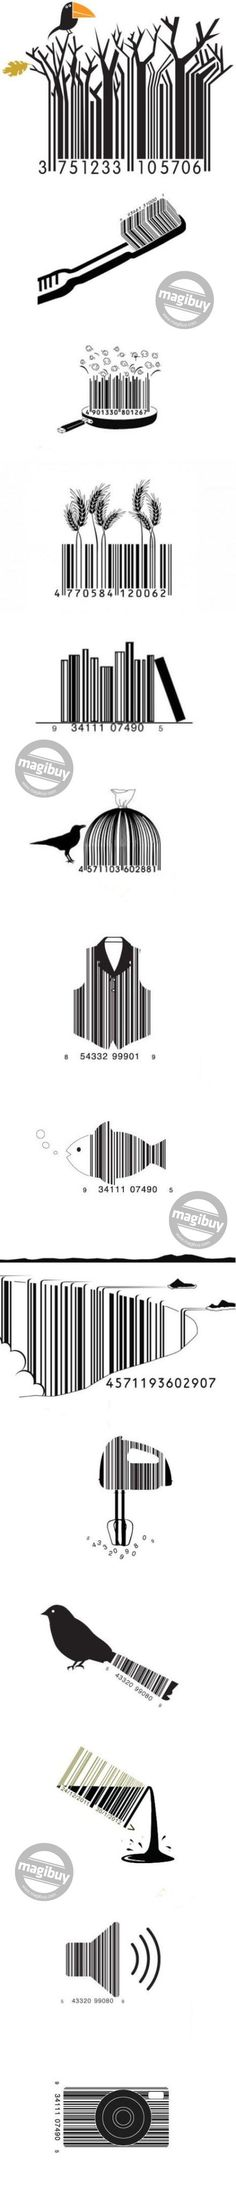 Creative bar code #illustrations! Love. via http://83oranges.com #repin #design